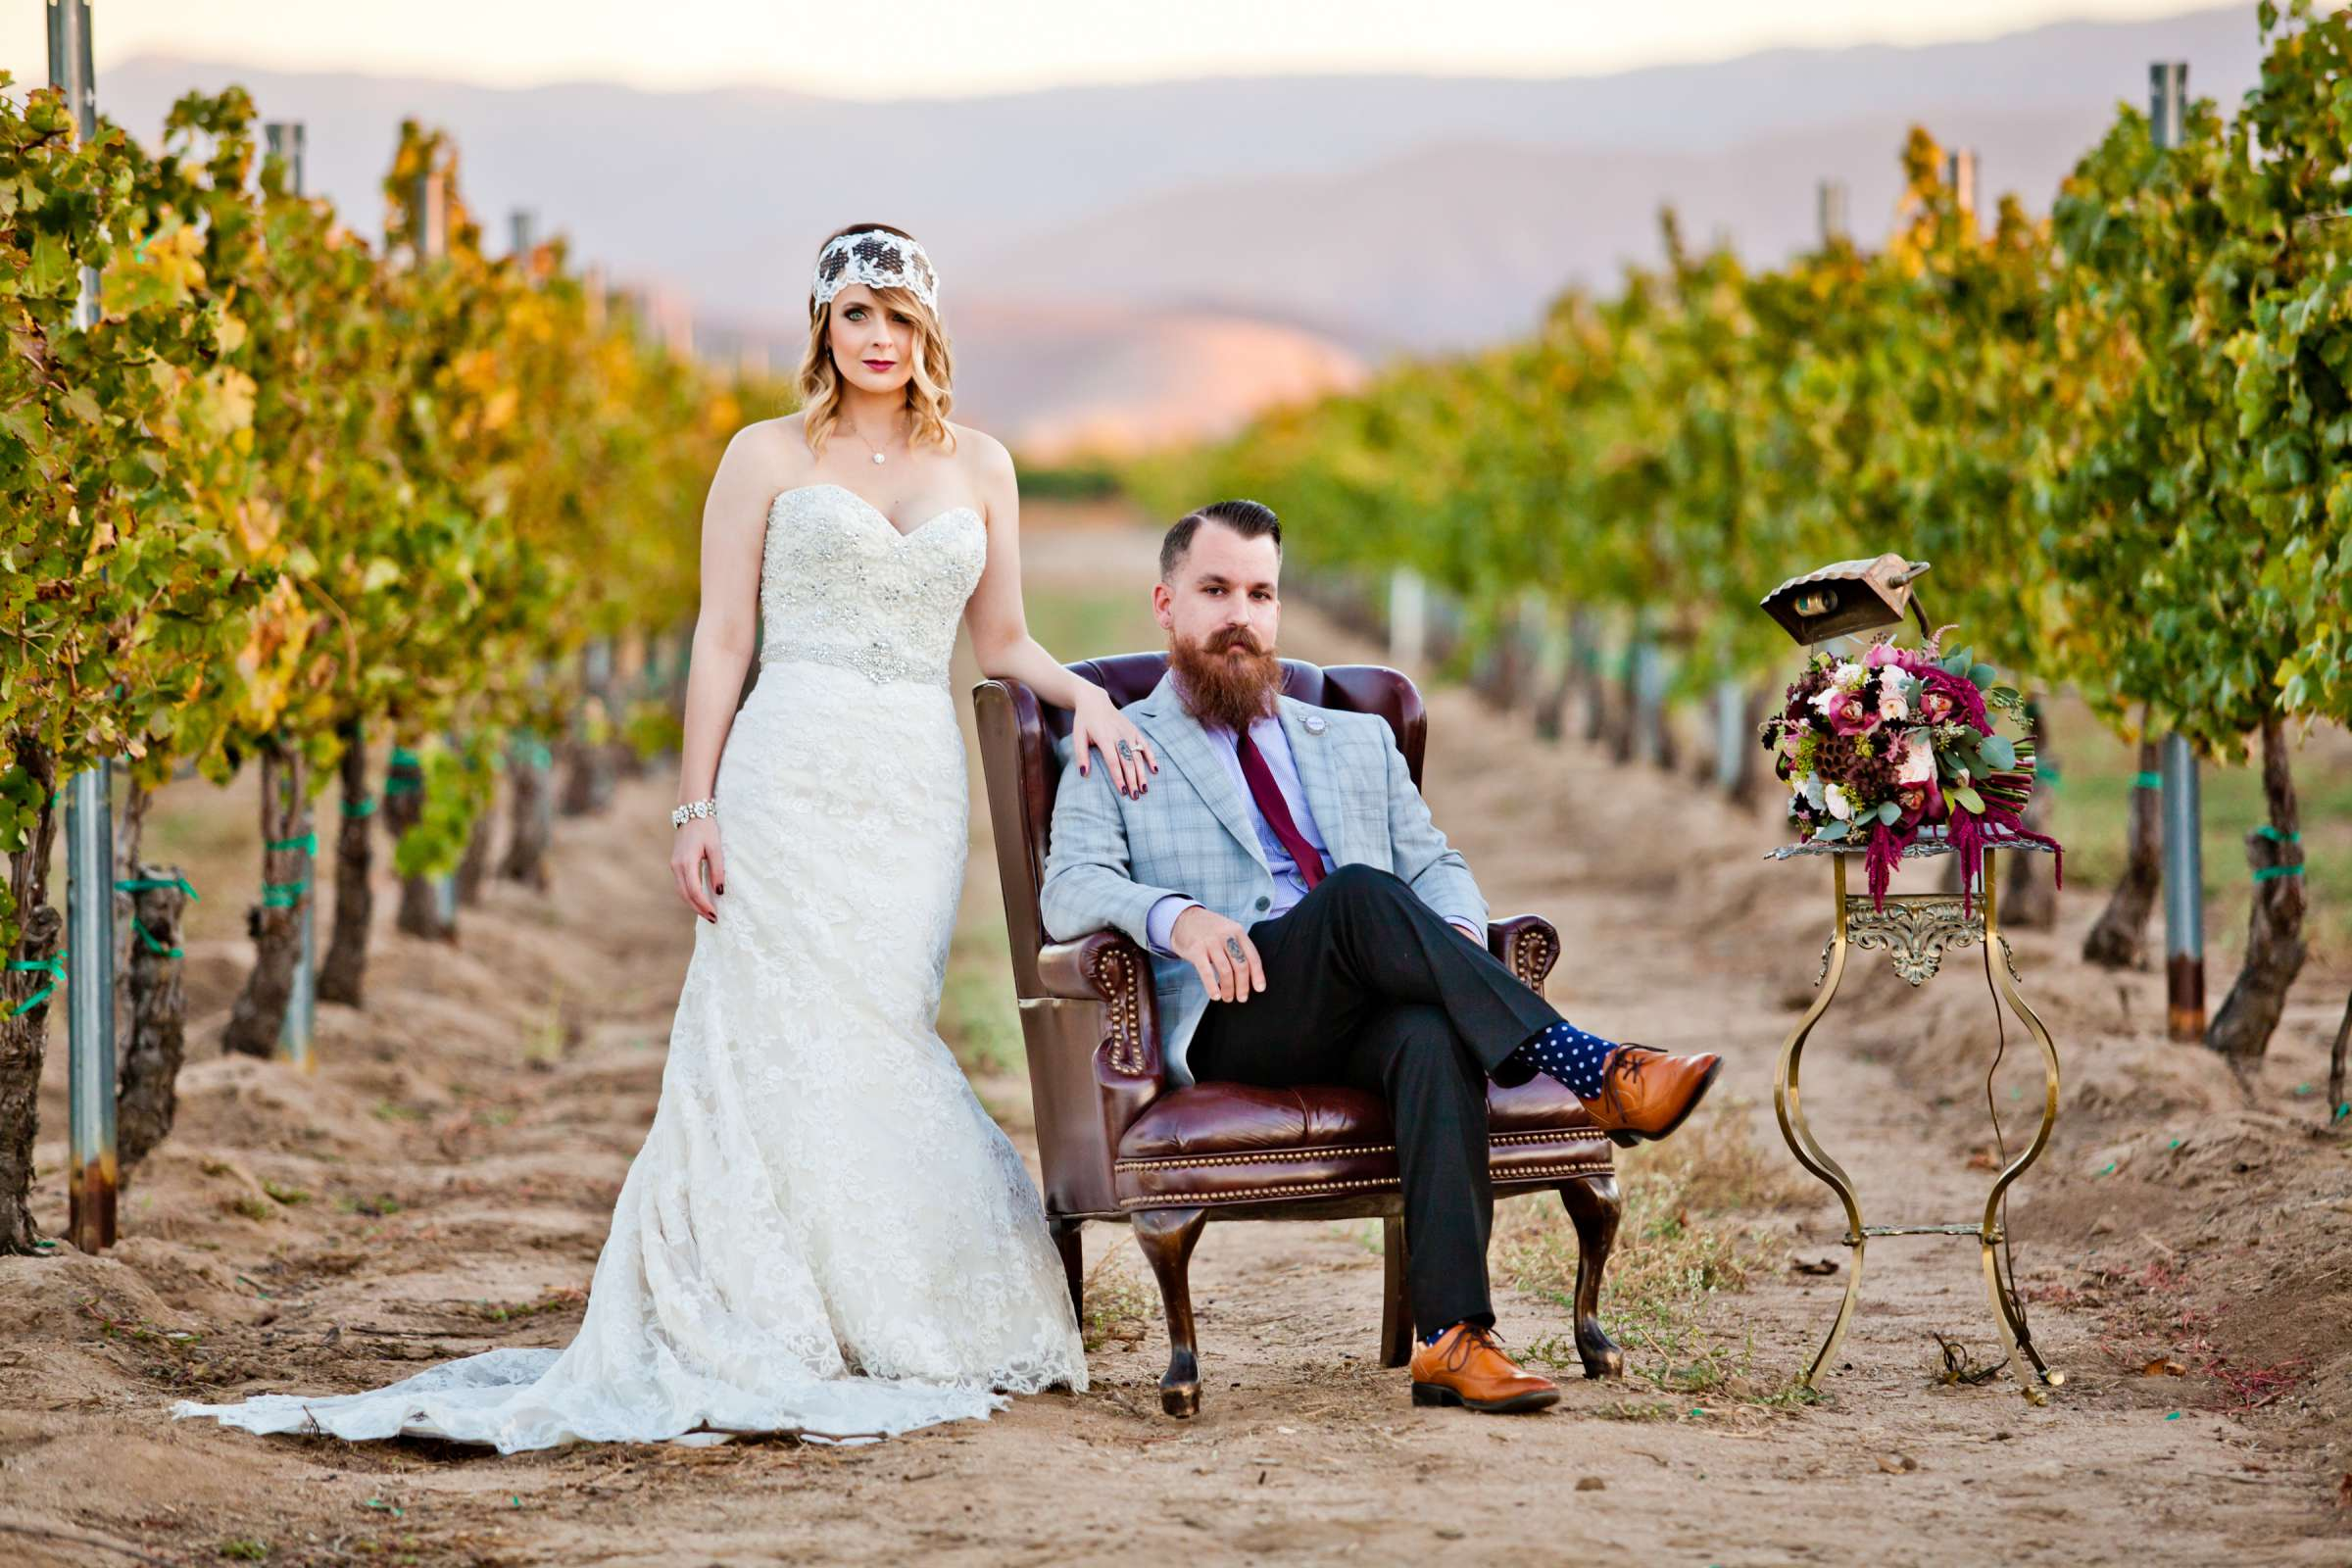 Ponte Estate Winery Wedding coordinated by Seven Stems Floral Design & Events, Rachel and Dustin Wedding Photo #362406 by True Photography